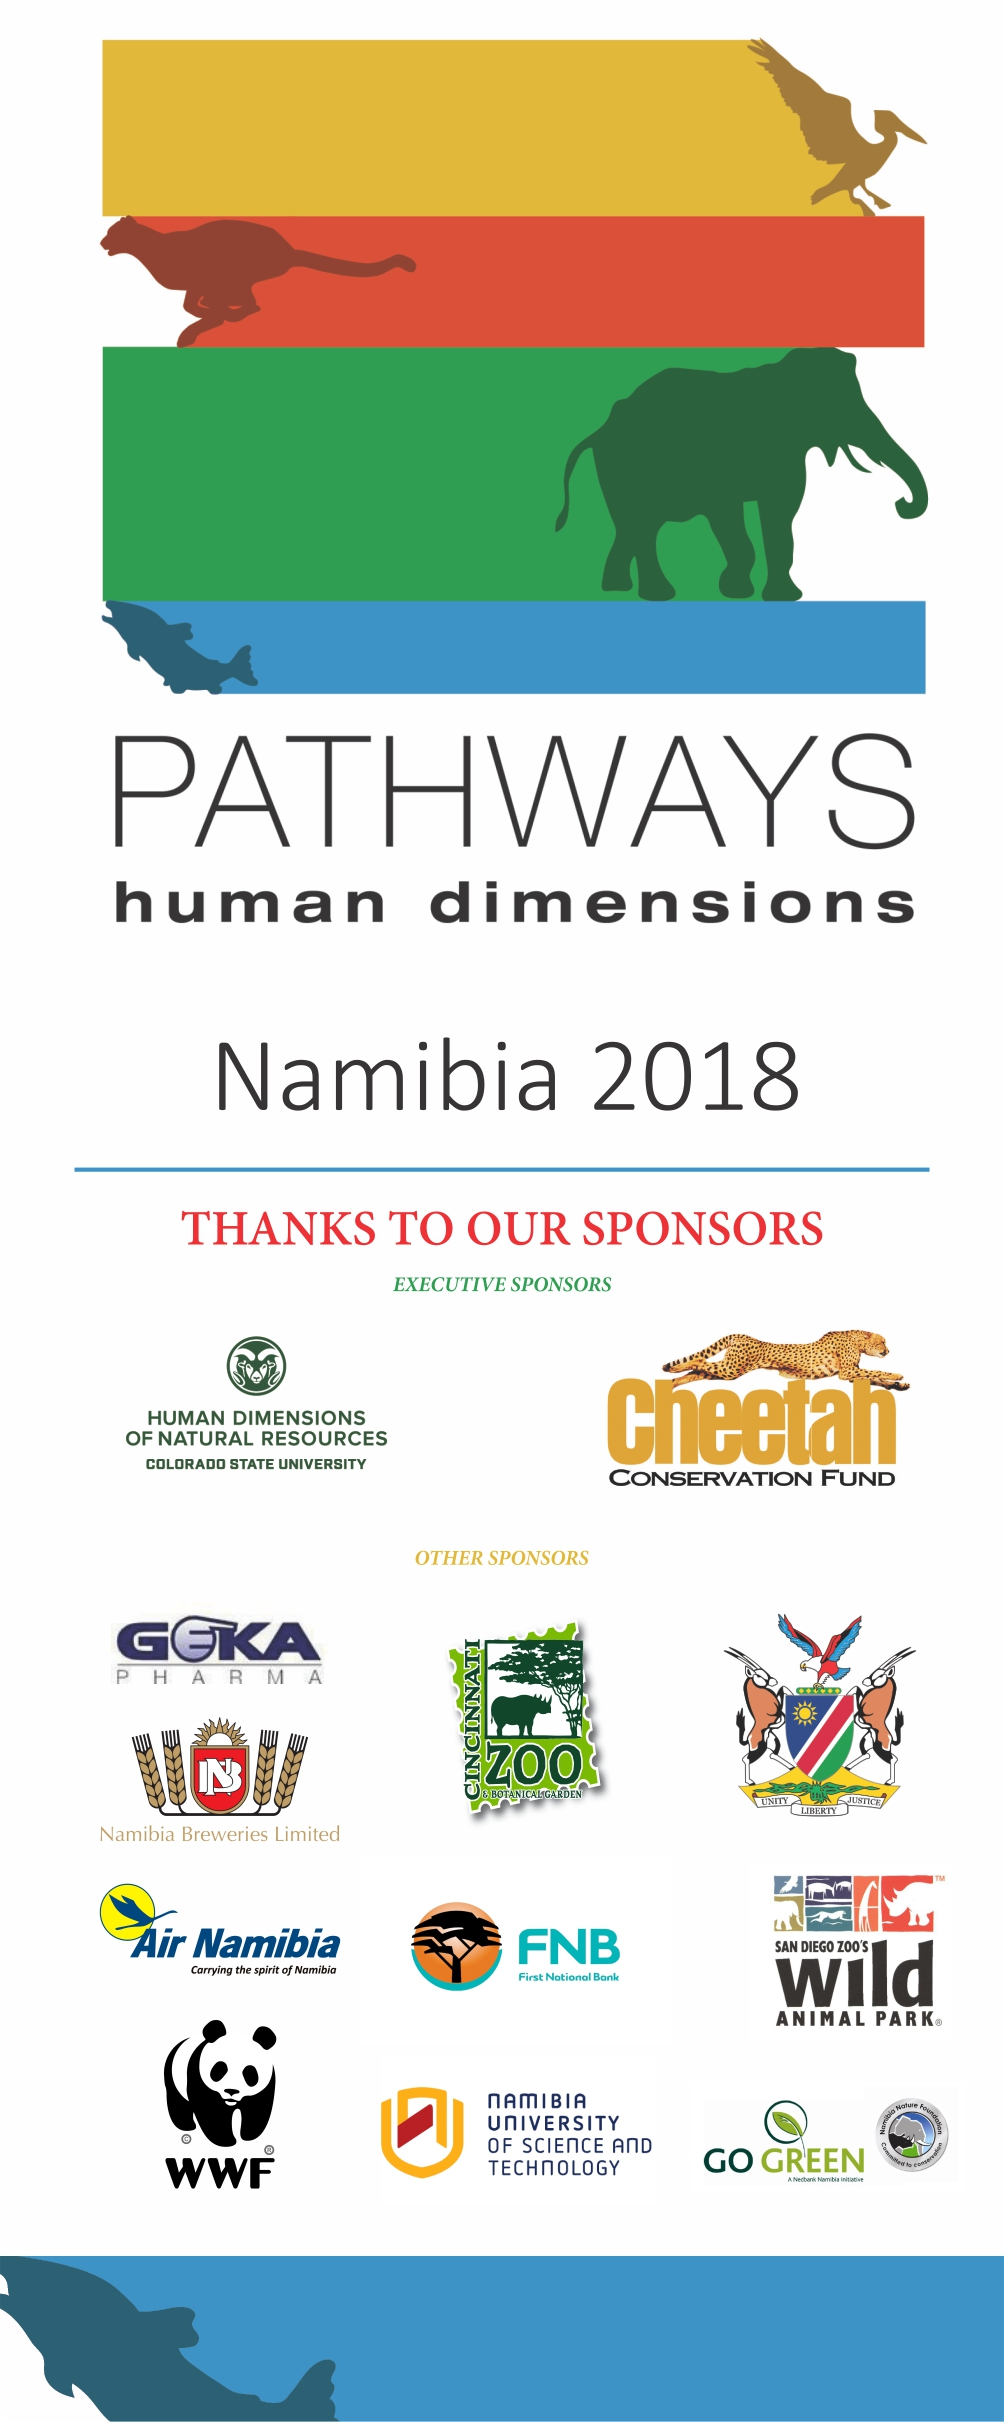 Pathways - Human Dimensions